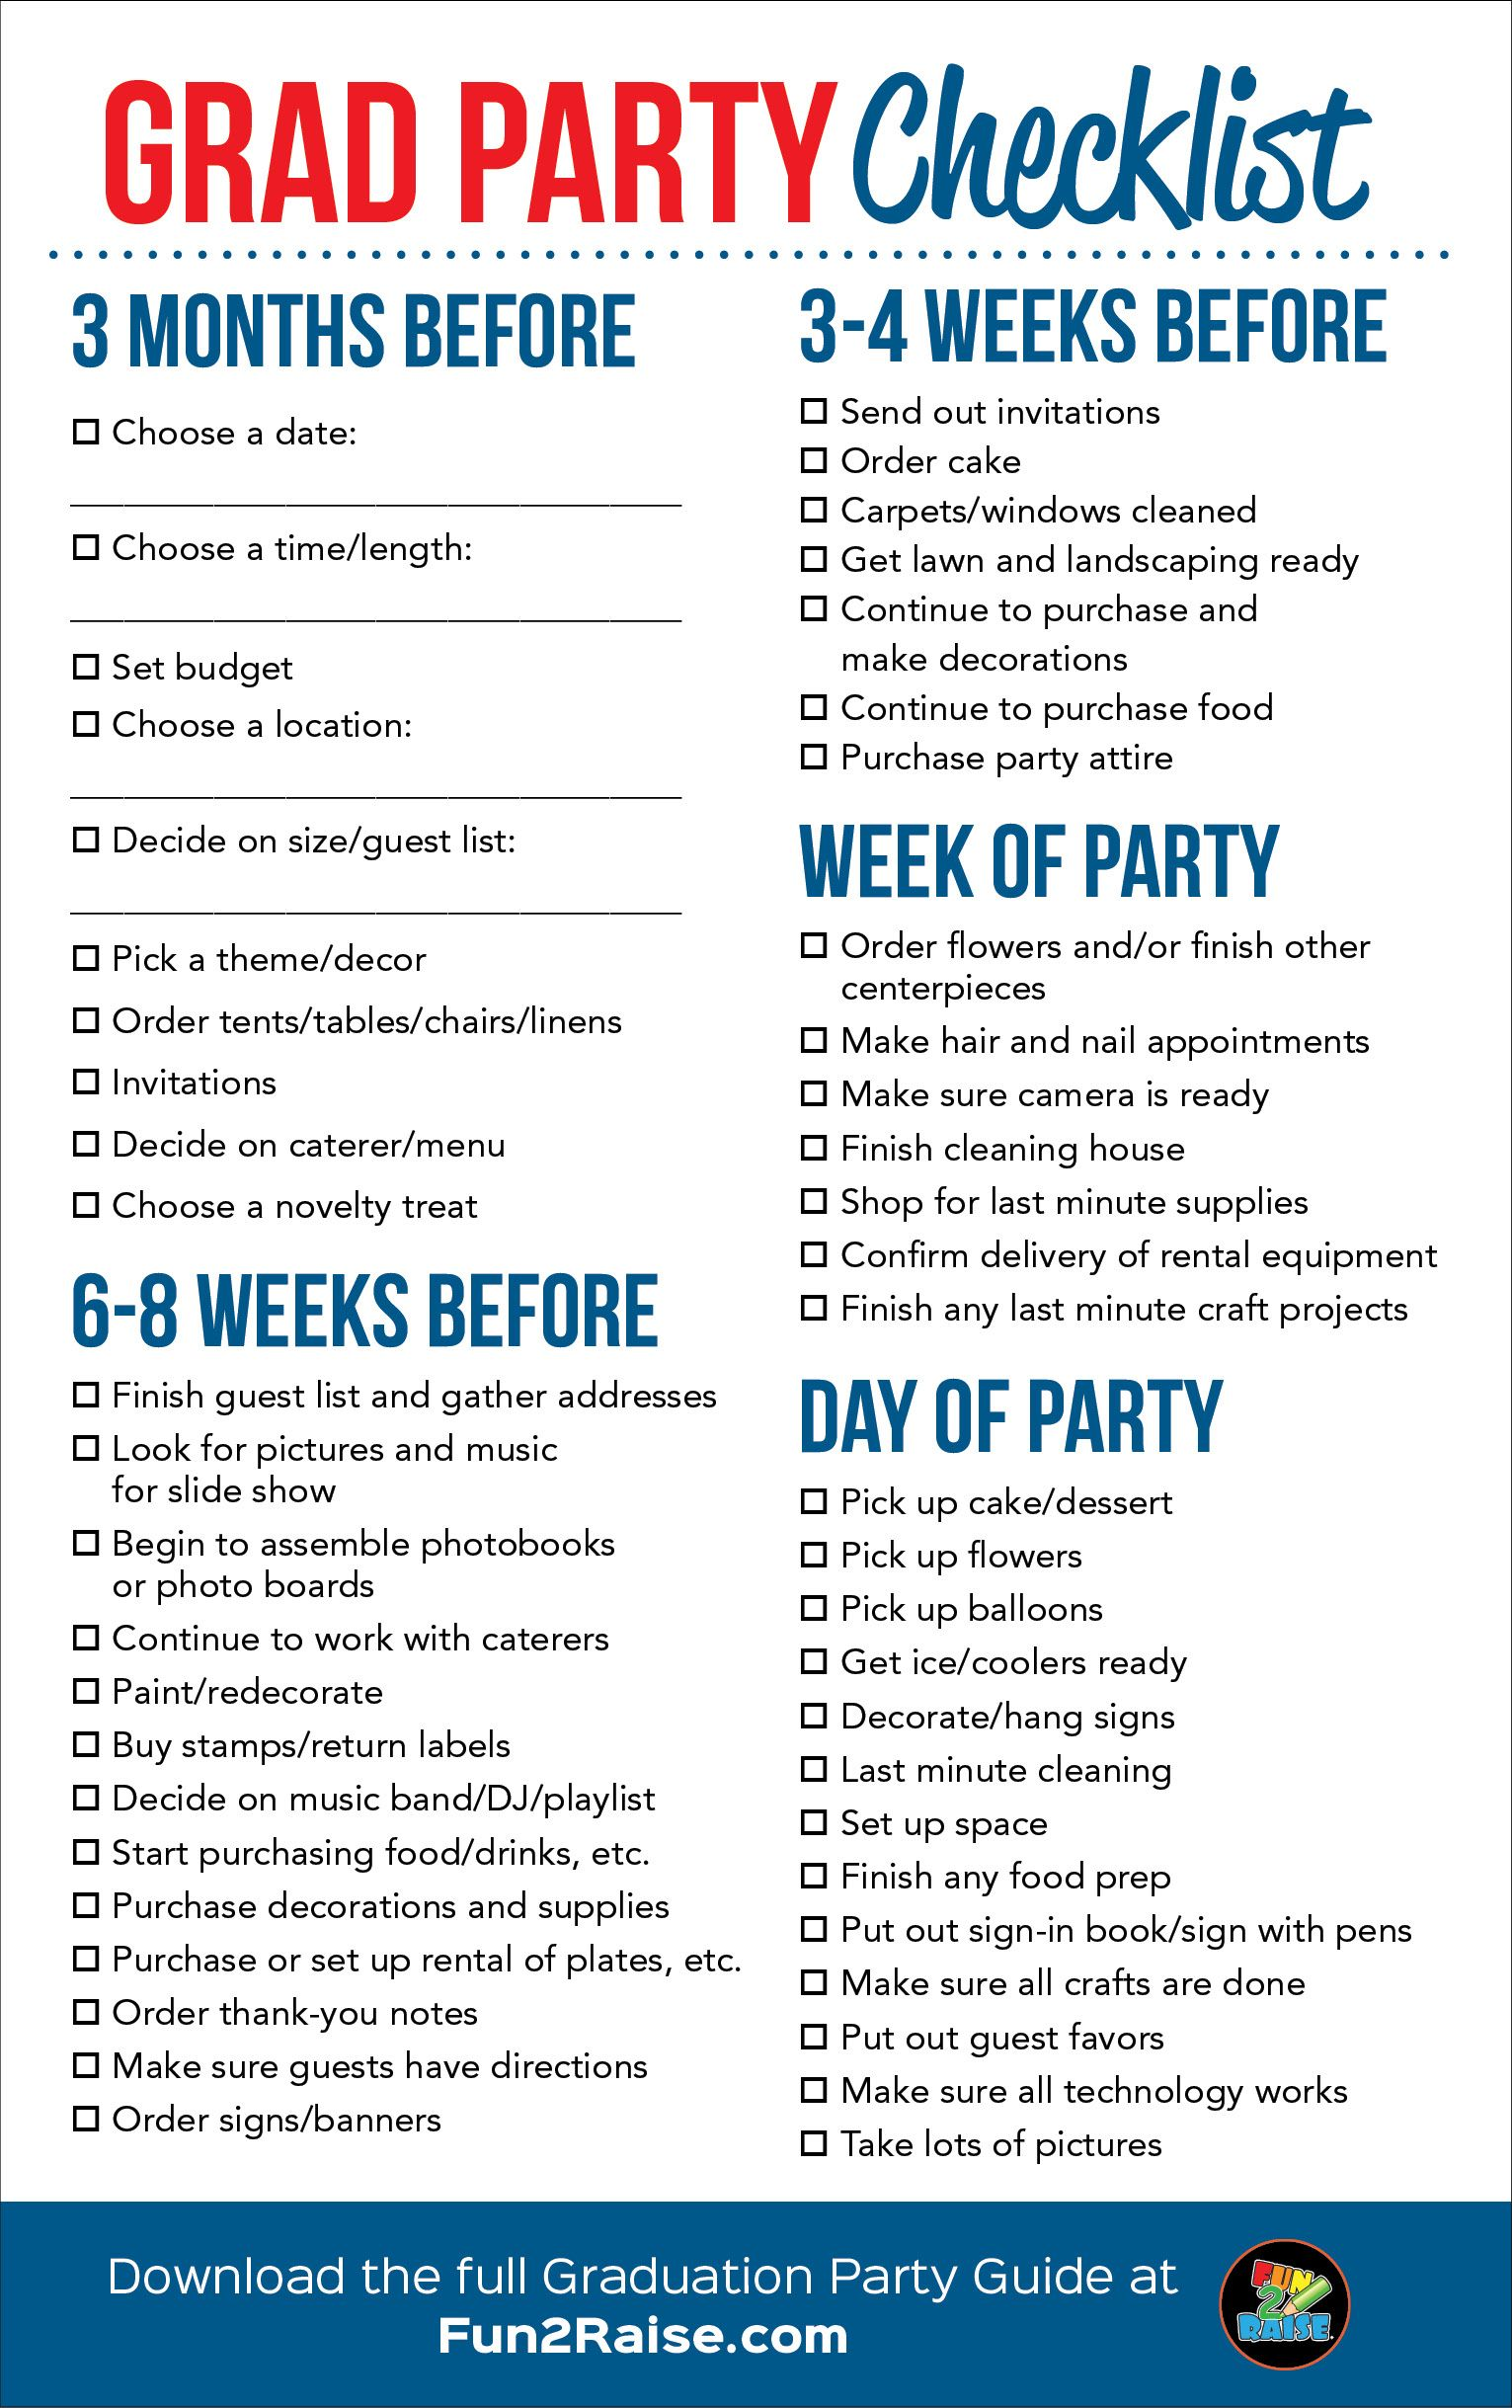 The Perfect Grad Party Checklist For More Helpful Tips On Planning Your Next Grad Senior Graduation Party Graduation Party Checklist Graduation Party Planning